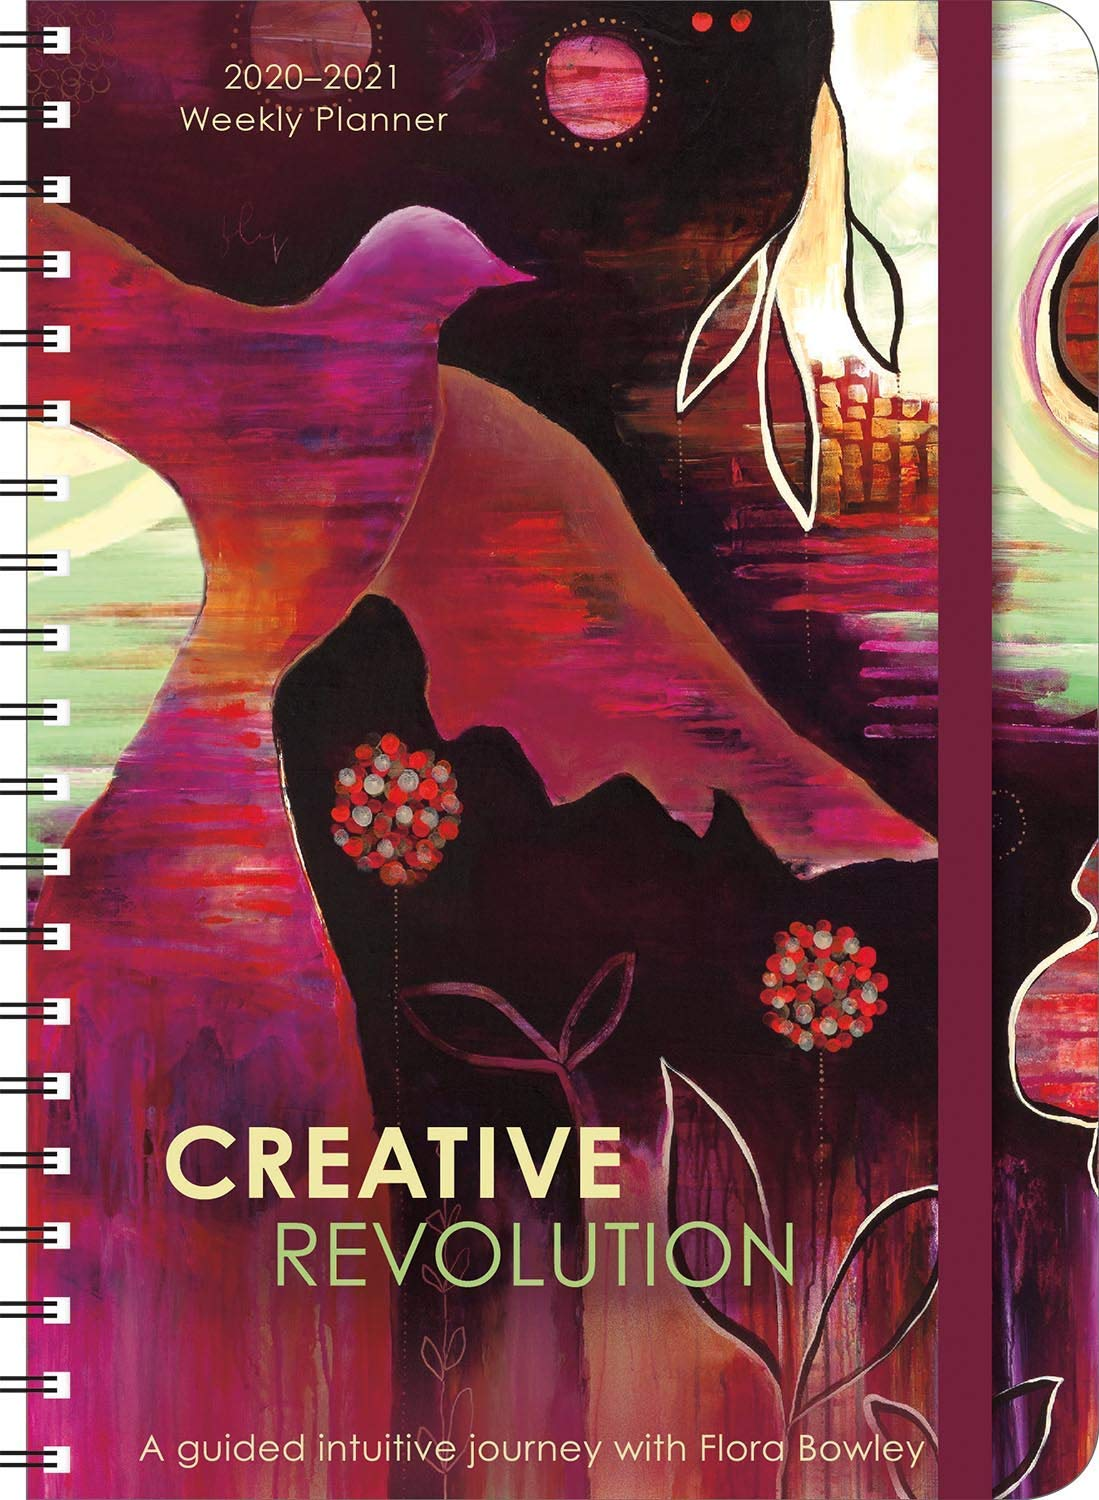 Image OfCreative Revolution 2020 - 2021 On-the-Go Weekly Planner: 17-Month Calendar With Pocket (Aug 2020 - Dec 2021, 5